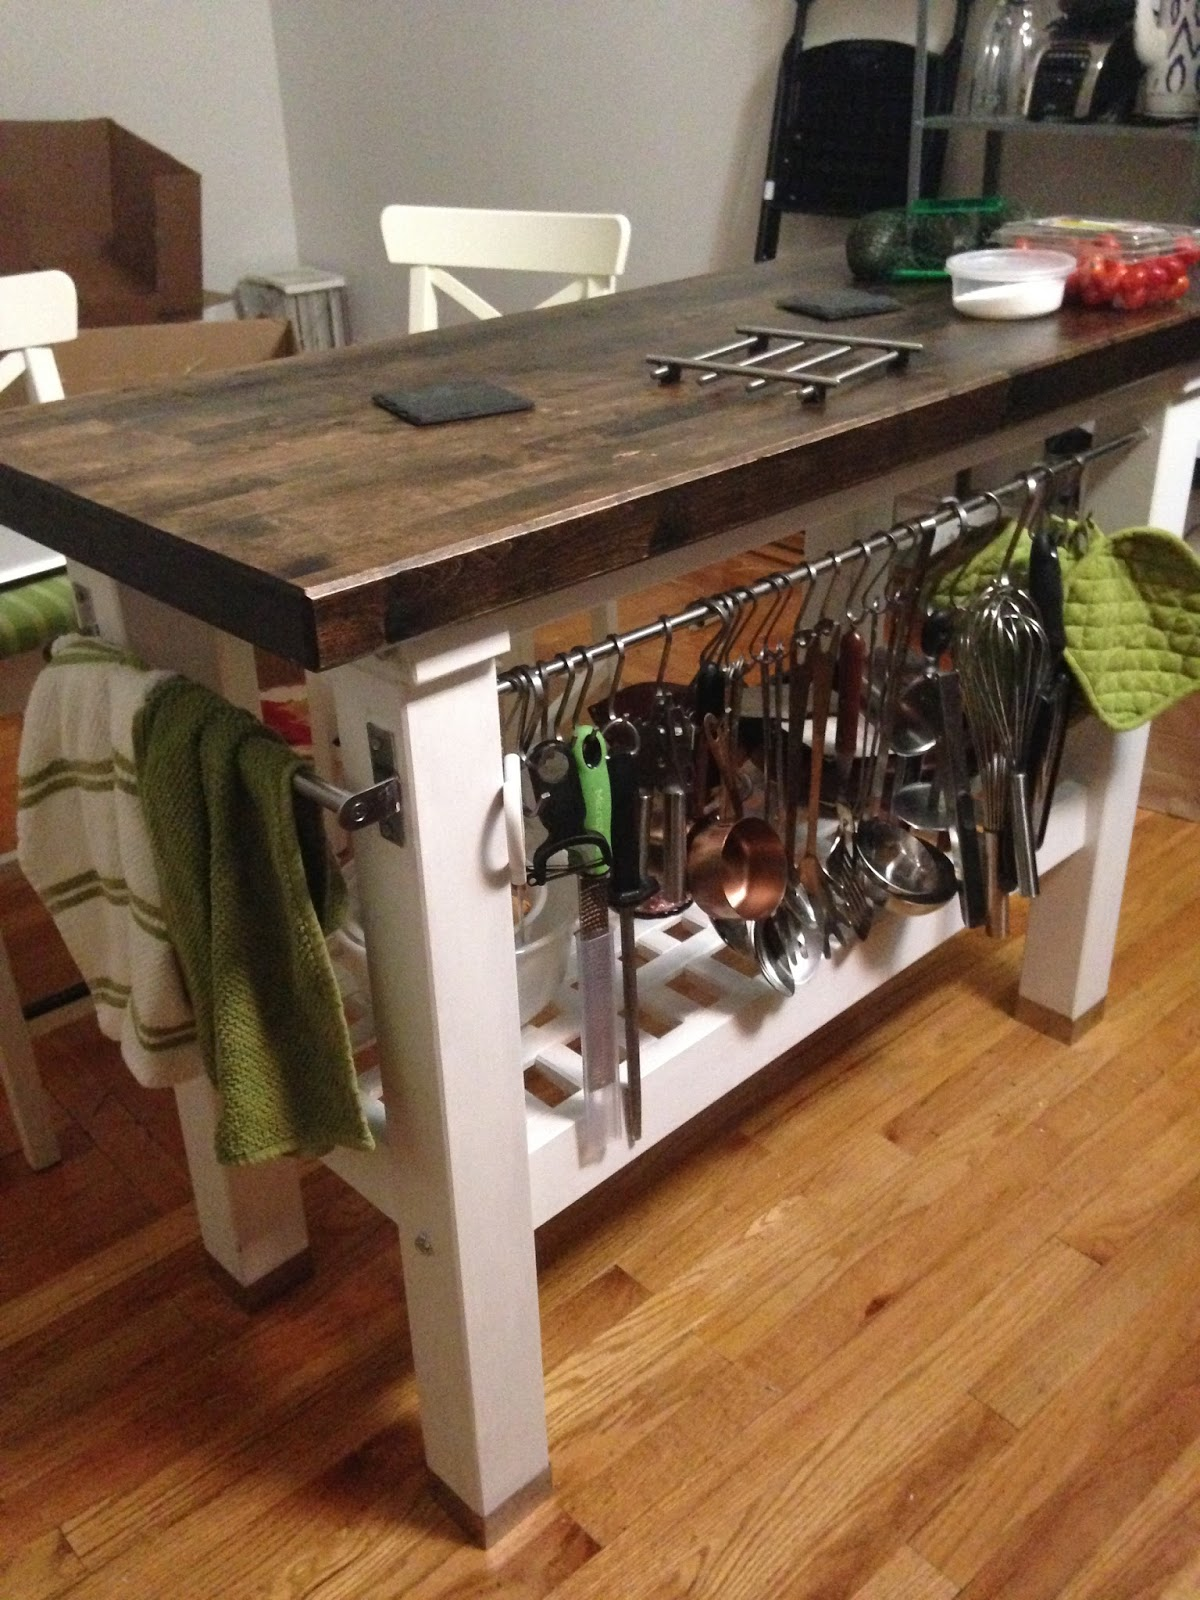 Bake and Baste How to Stain and Finish a Rustic Kitchen Island IKEA GROLAND